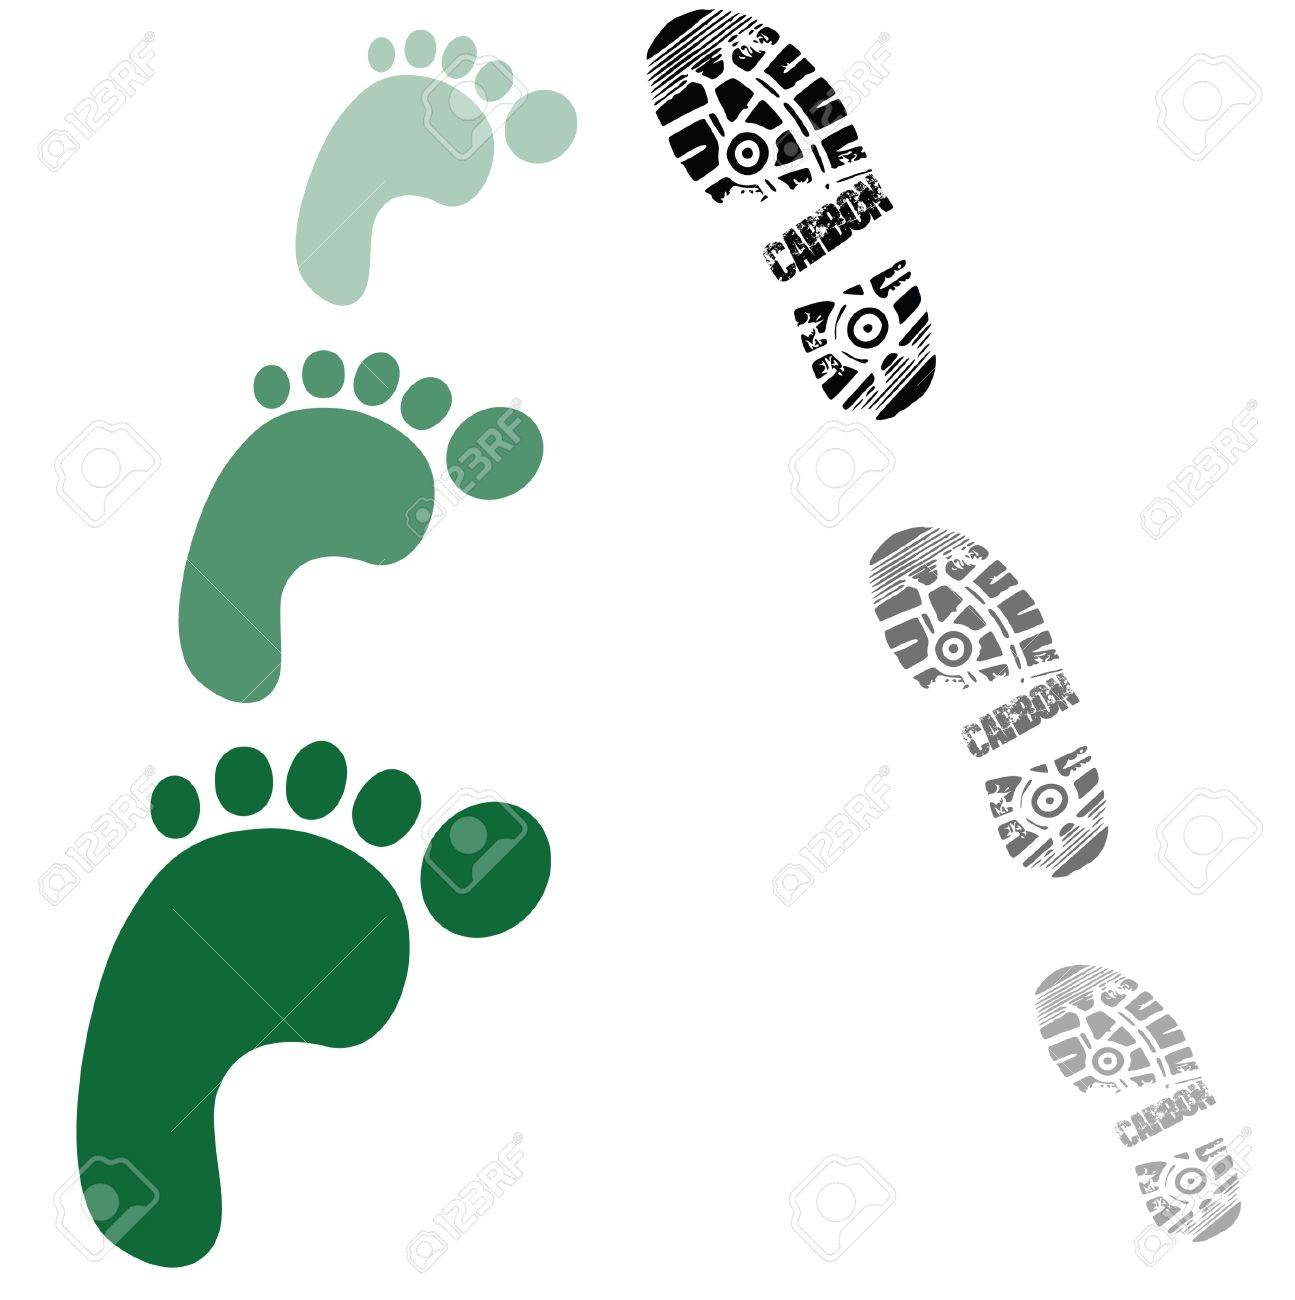 green foot prints and shoe prints Stock Vector - 12779026